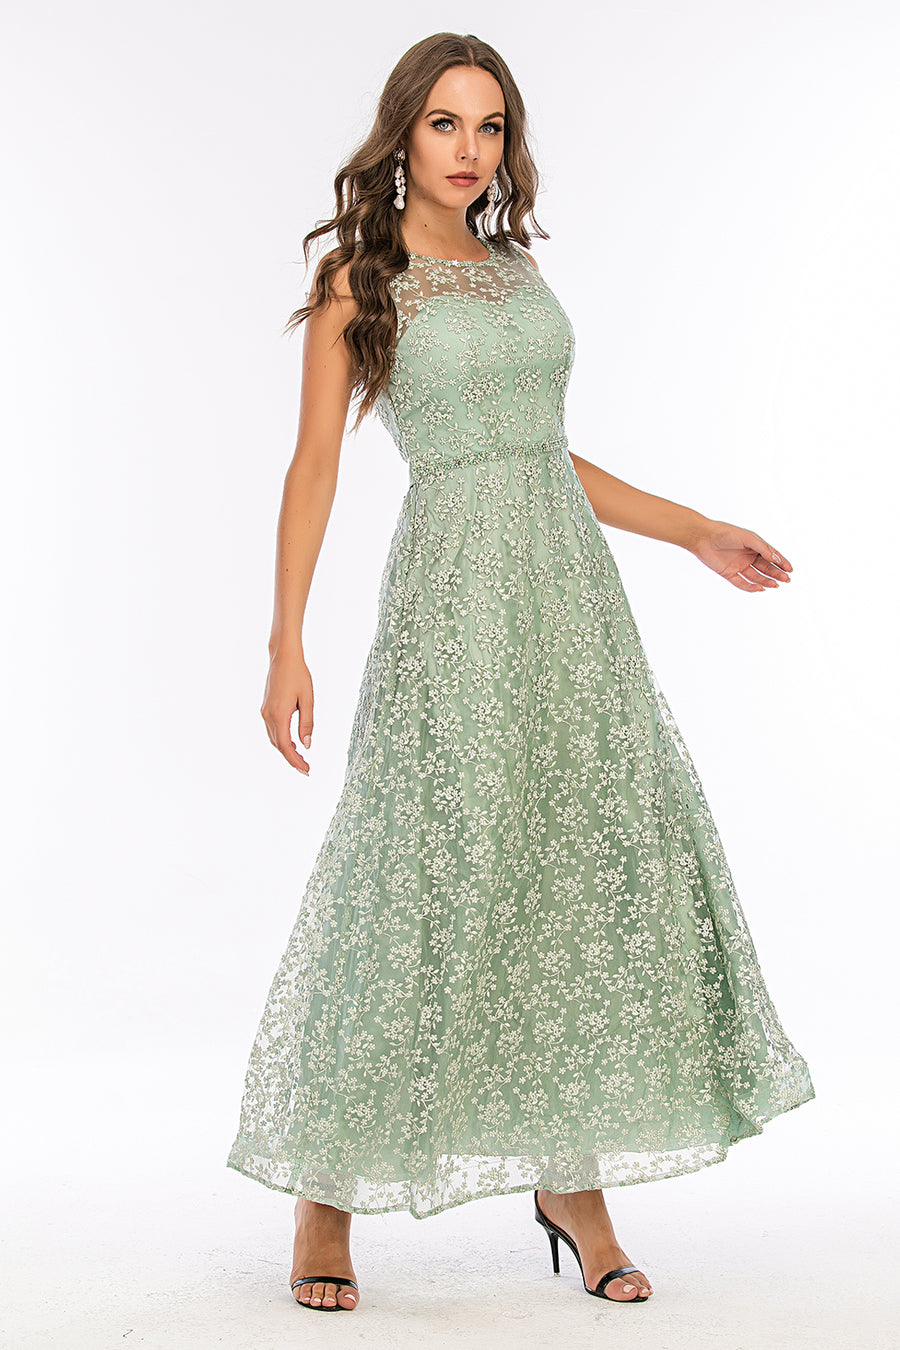 Mantra Pakistan Dress with Stones Details | Western Wear